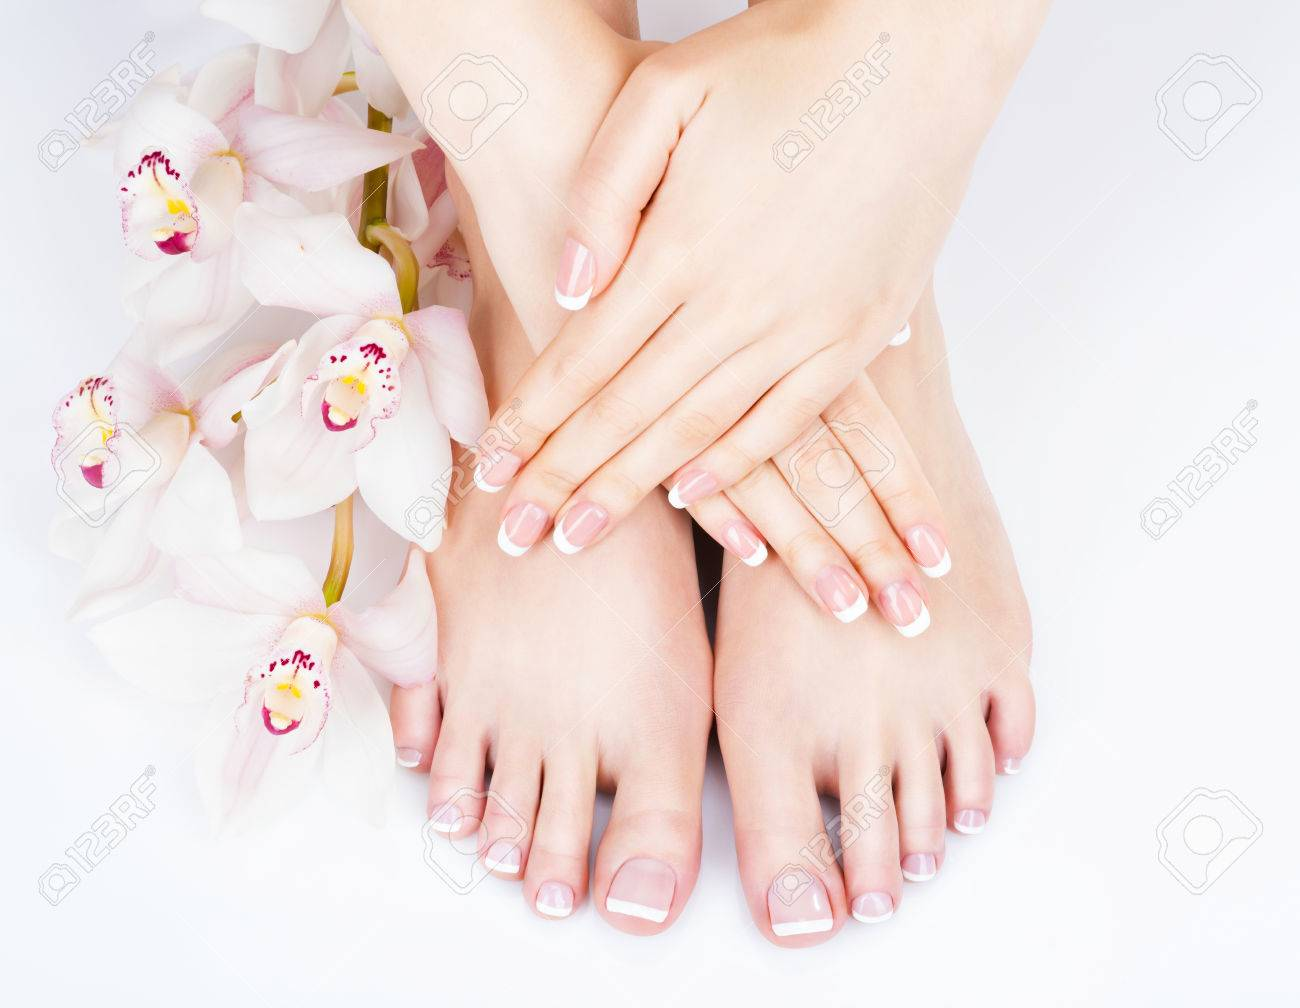 Closeup photo of a female feet at spa salon on pedicure and manicure procedure - Soft focus image Banque d'images - 54100863